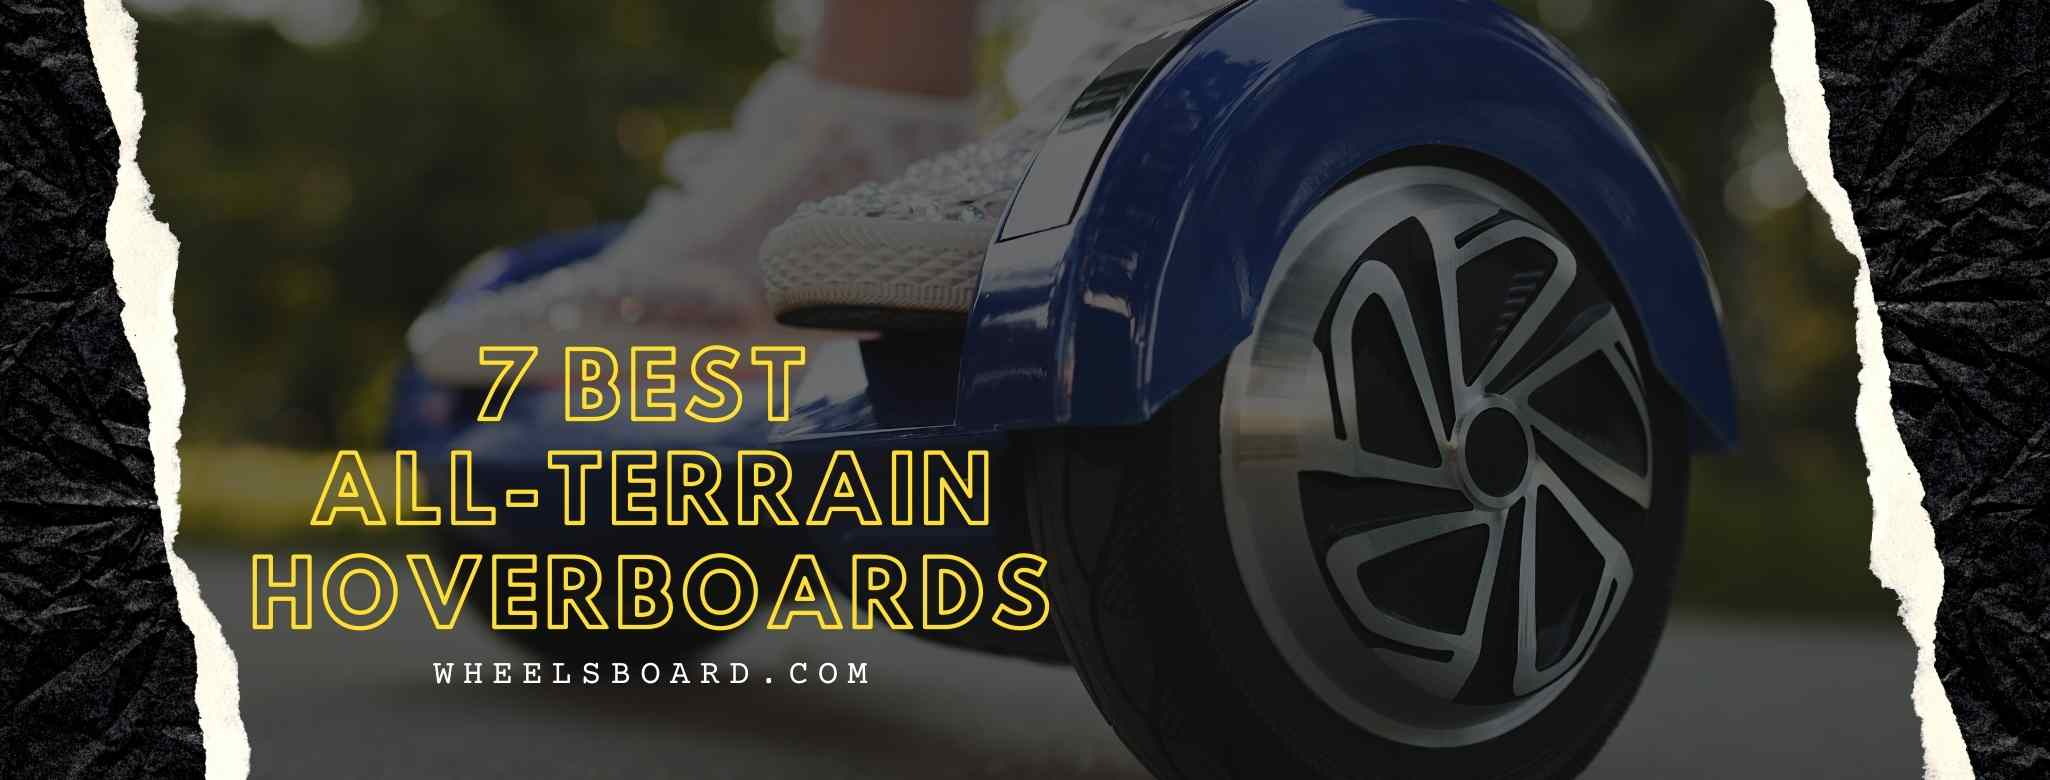 7-Best-All-Terrain-Hovarboards